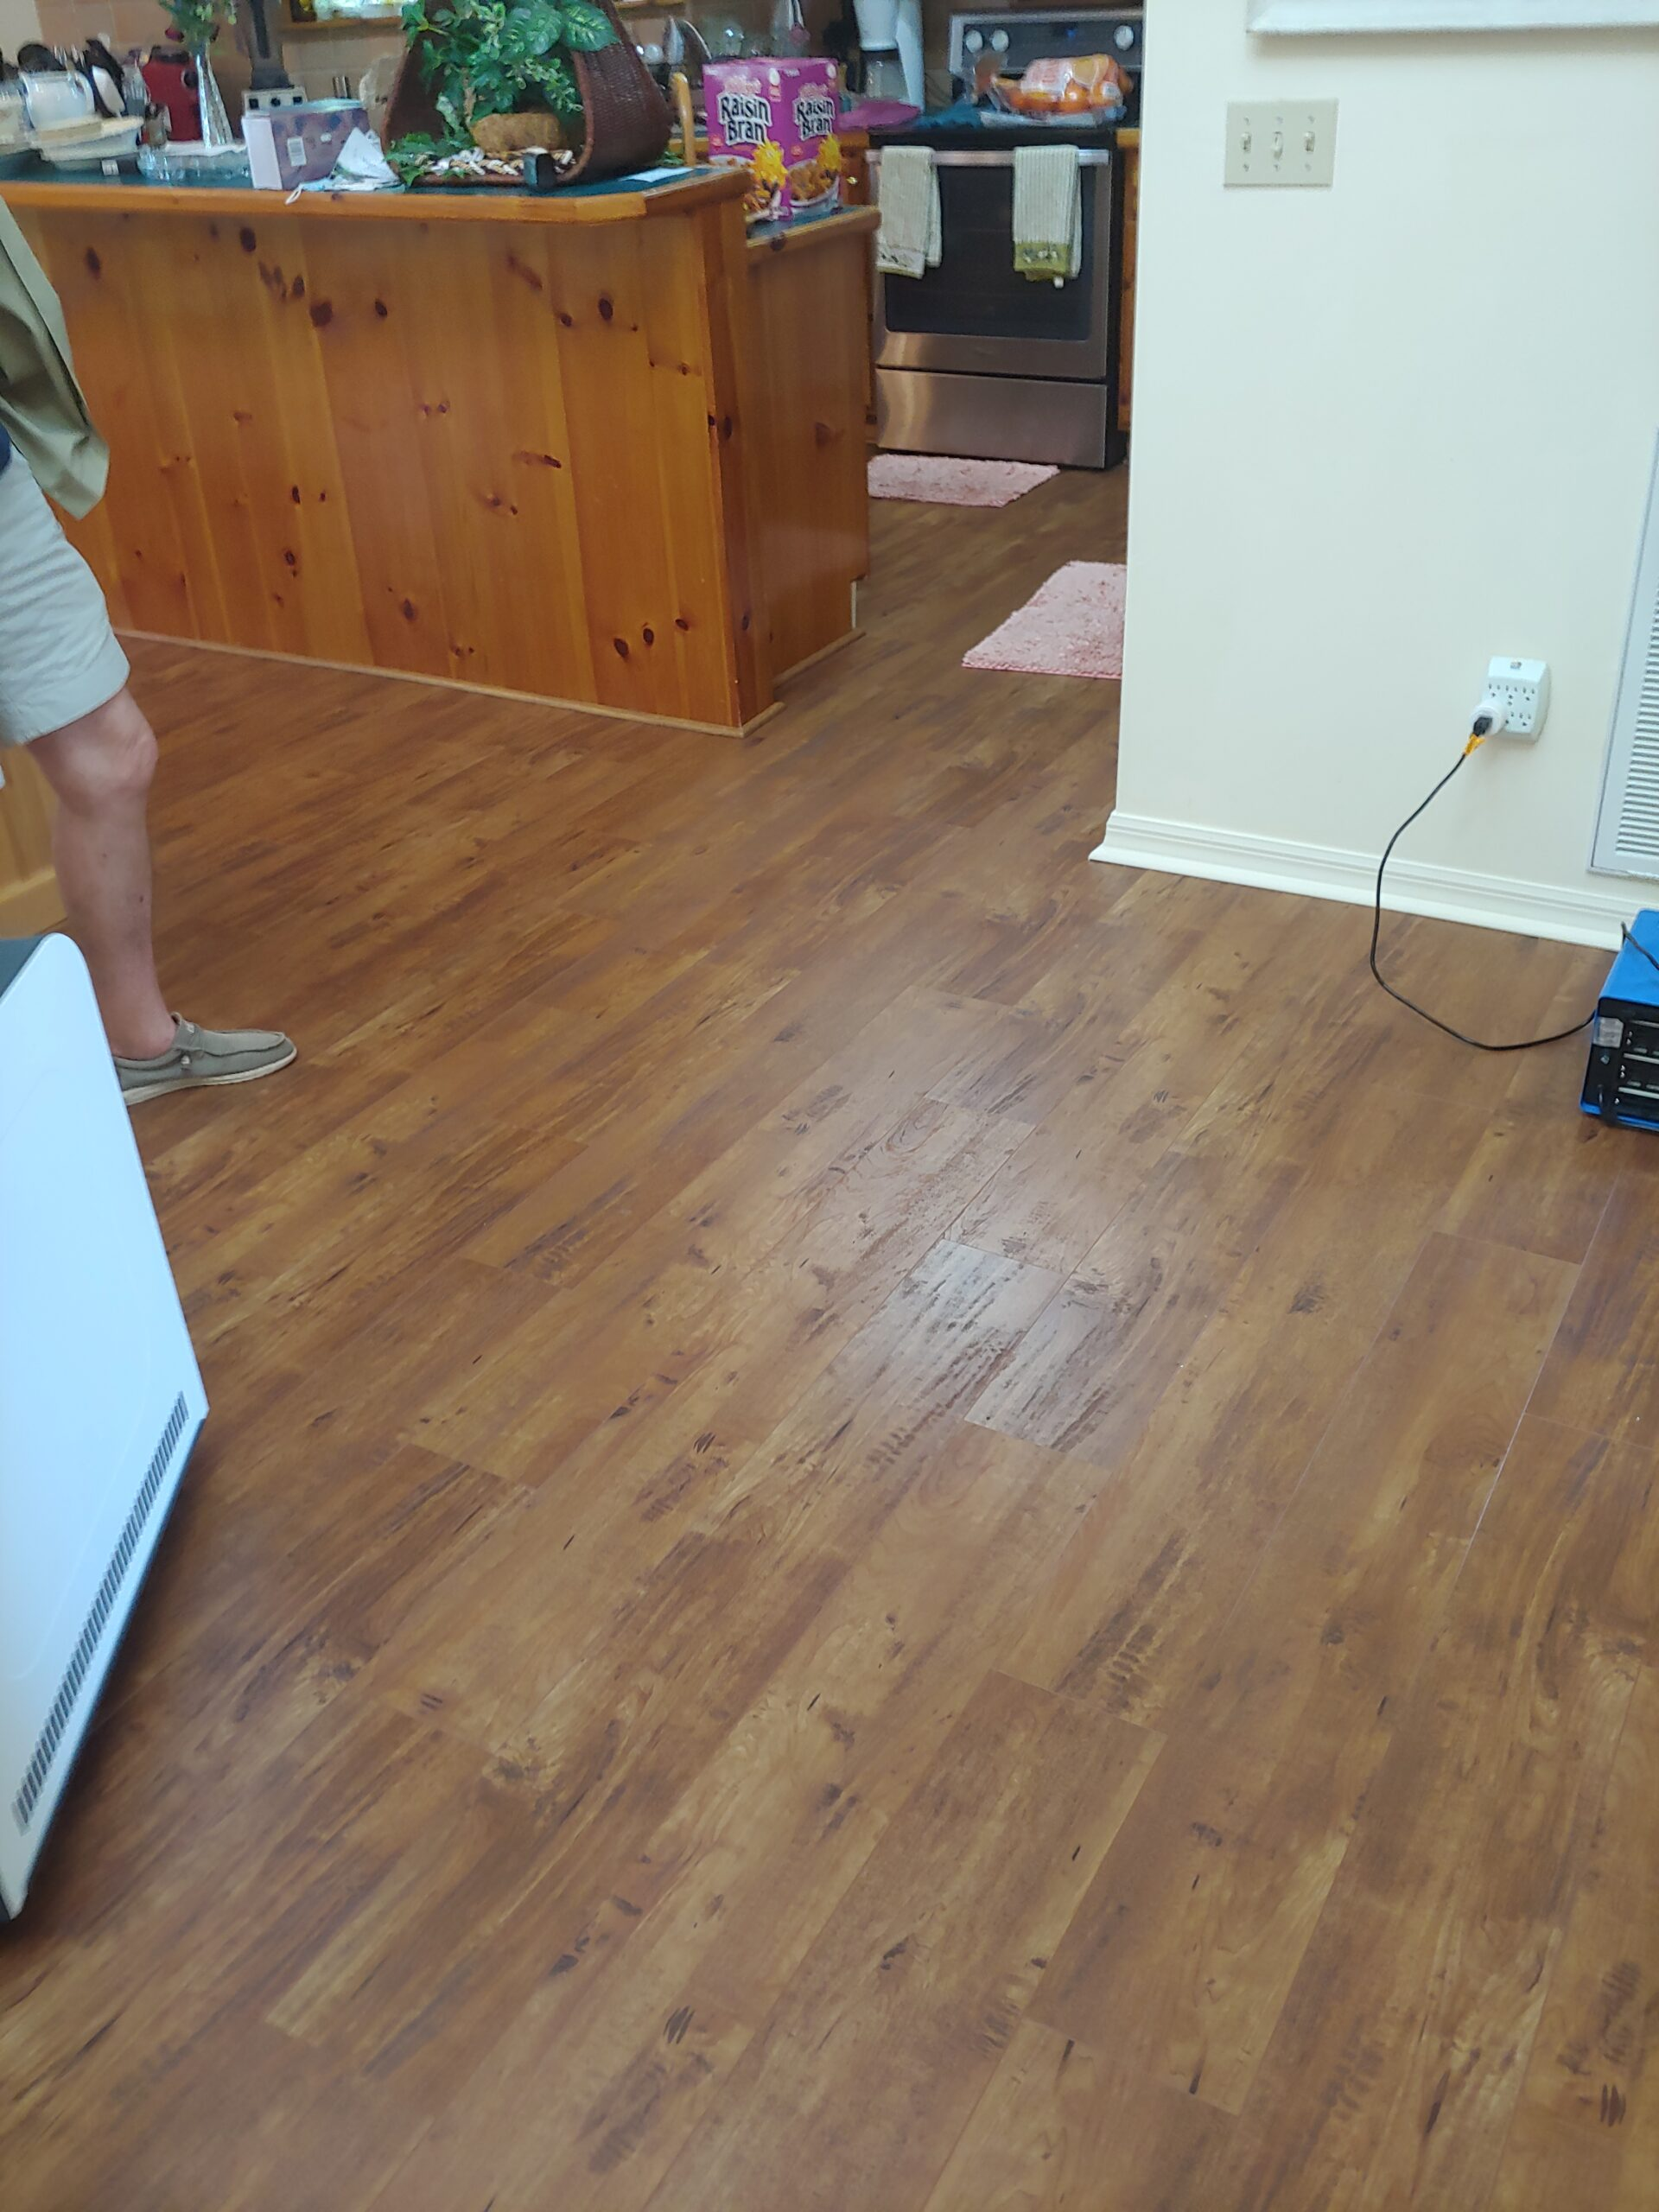 "</p> <p style=""background-color: light-blue;"">We invite you to come to our showroom to see and touch our flooring samples and discuss with our sales your shopping list and any question you may have. Visit our showroom or call us at (813) 645-1201 to set up an appointment to shop at home service.</p> <p>"